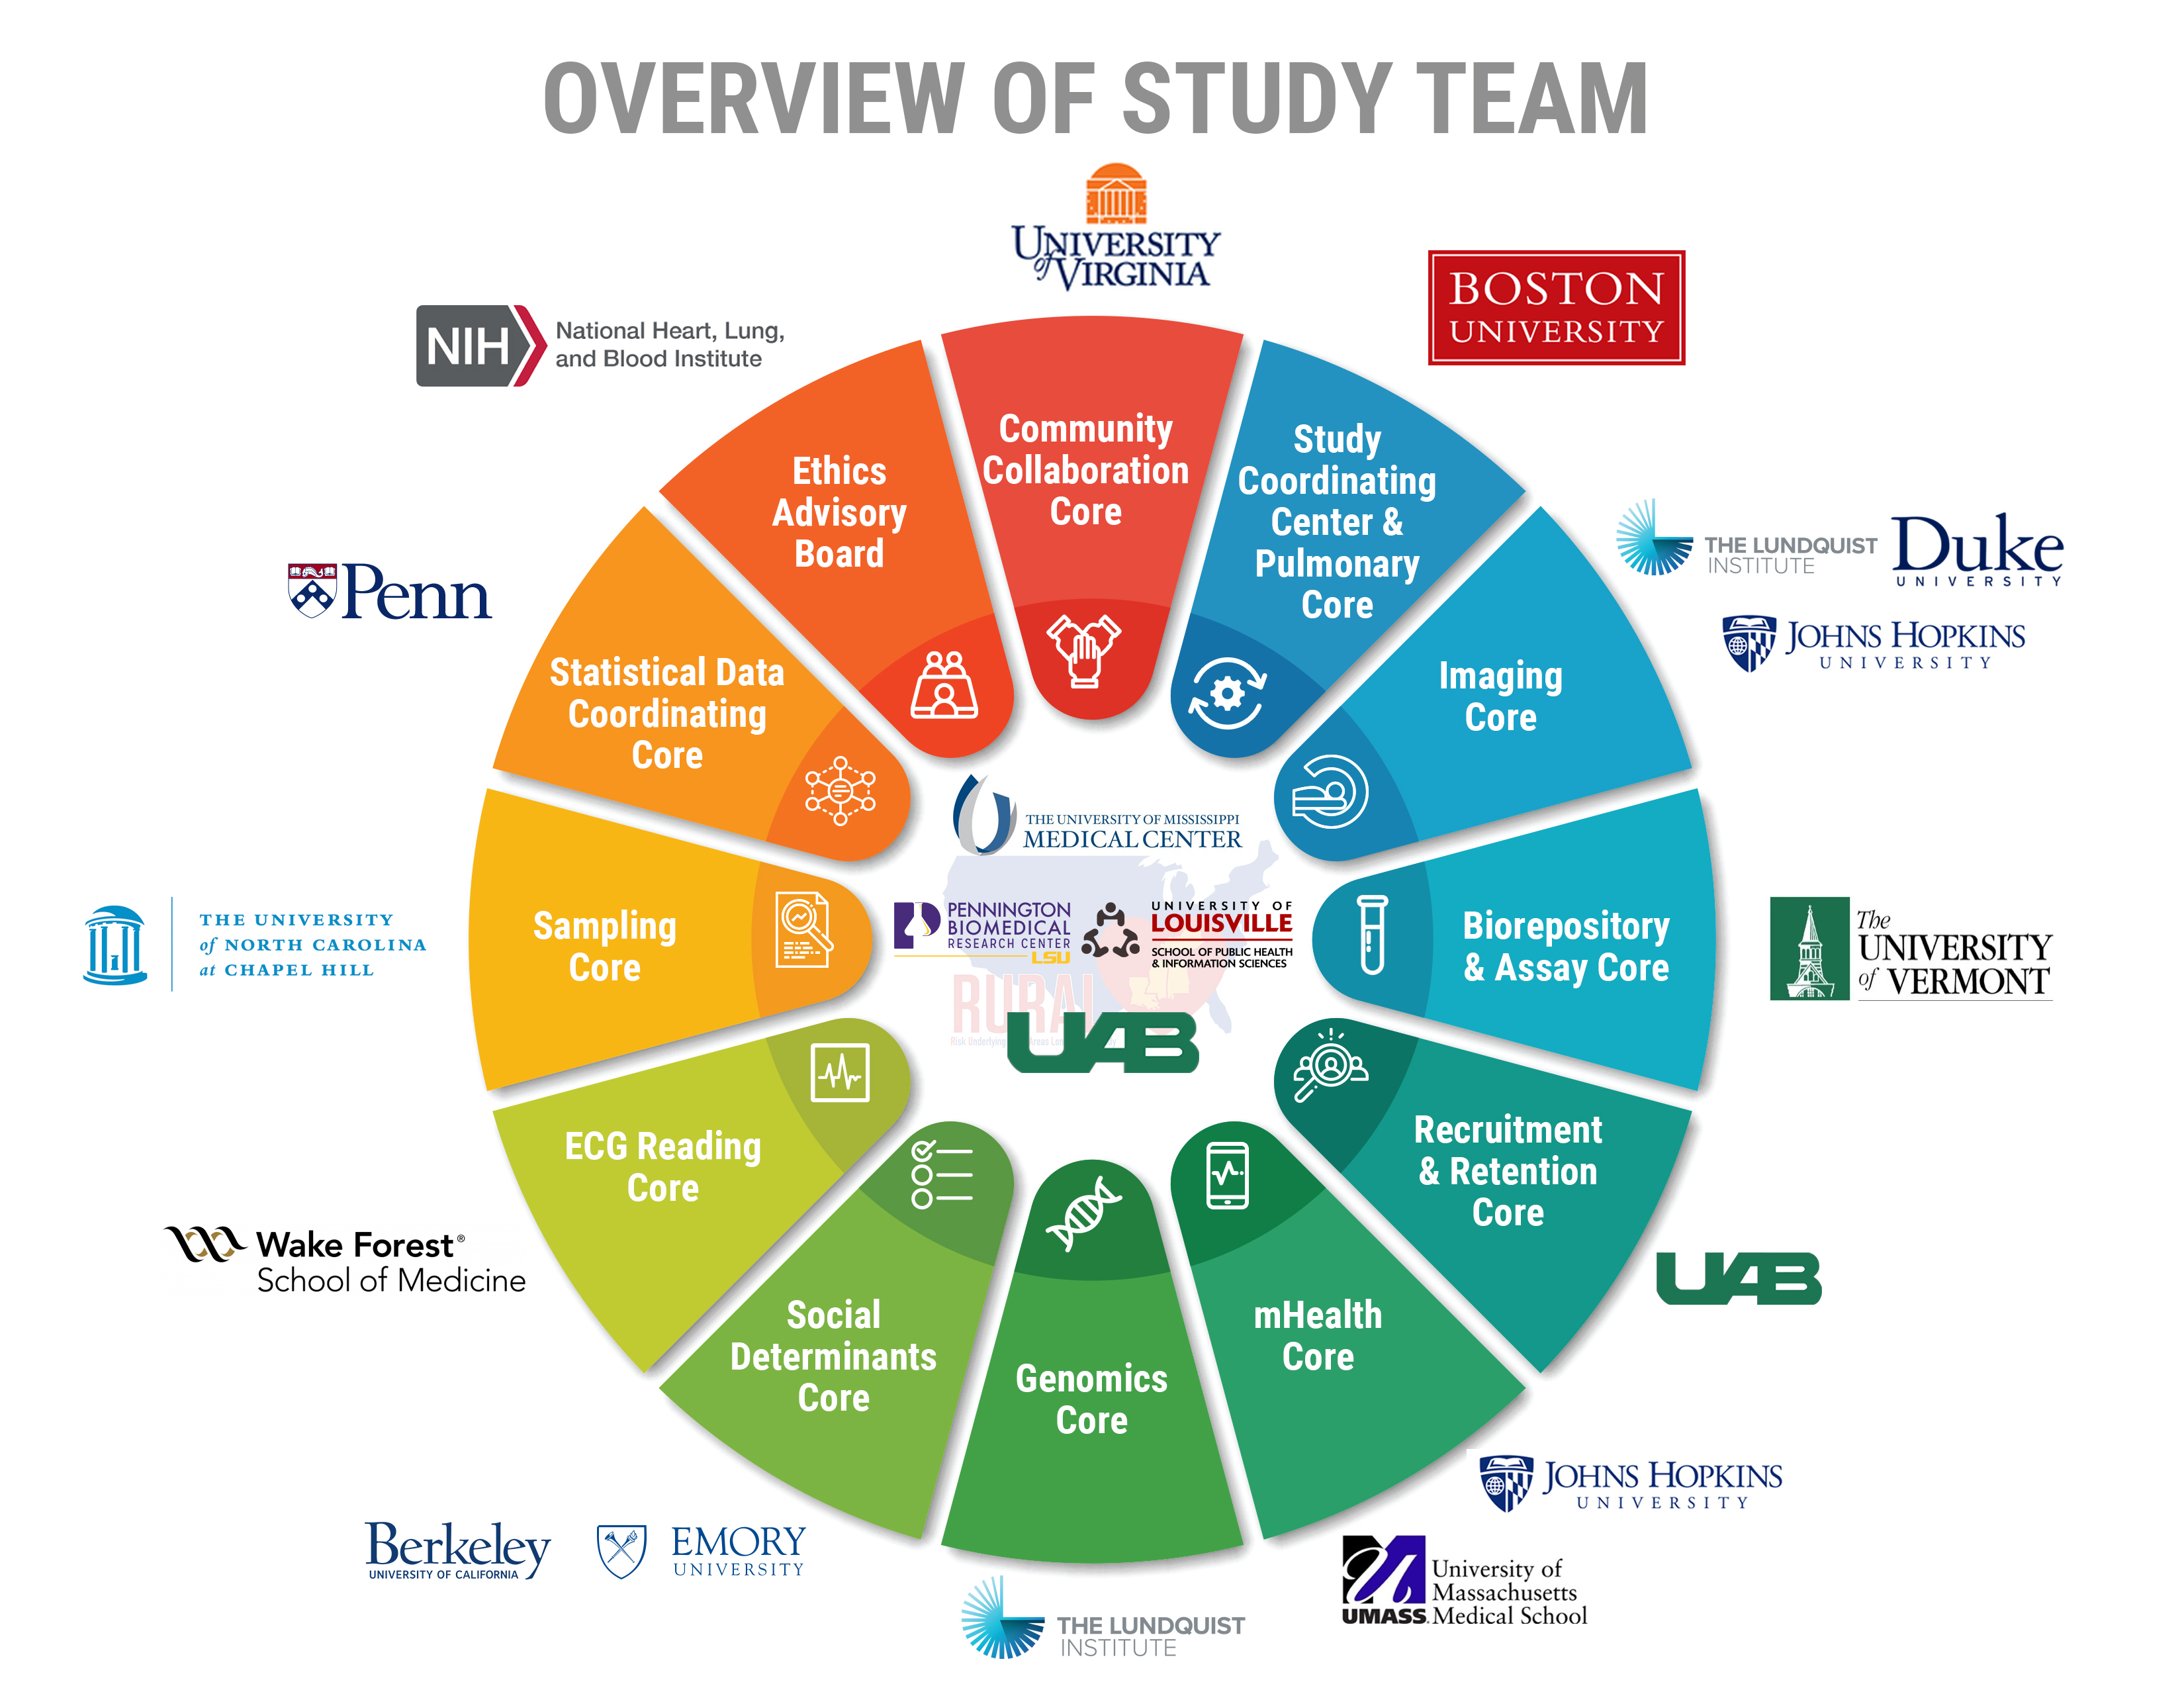 Overview of Study Team